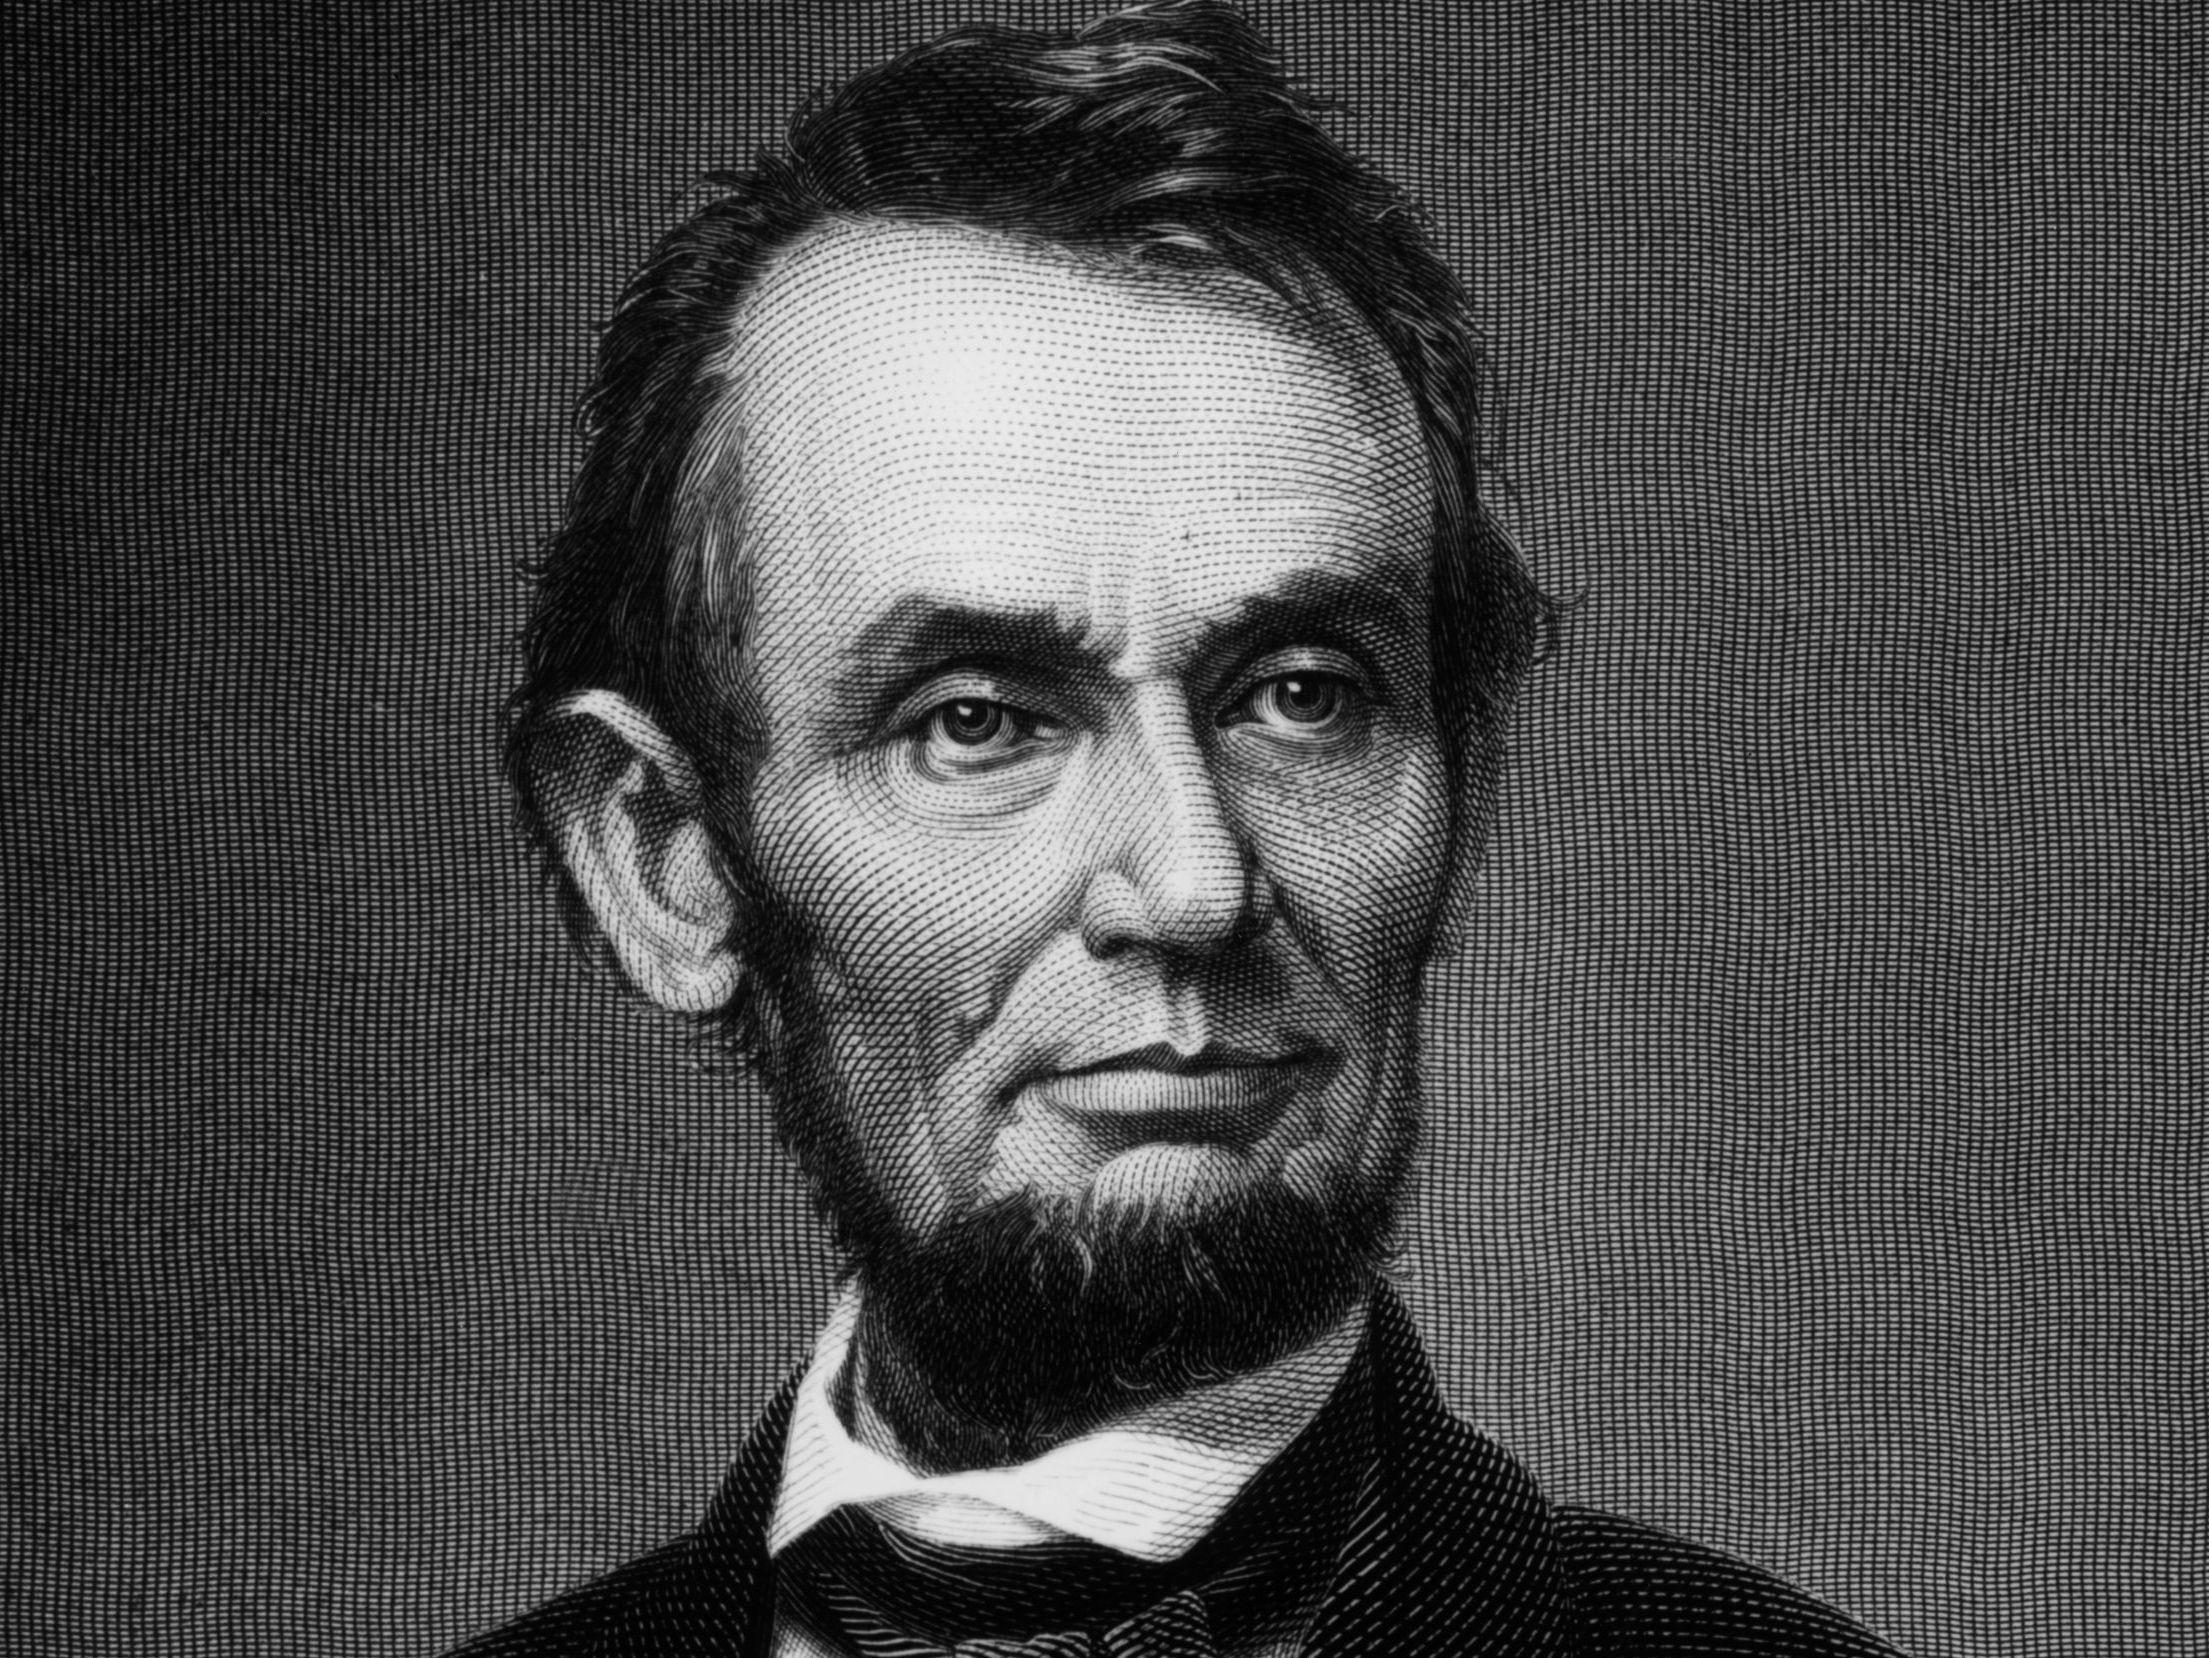 abraham lincolns leadership essay Abraham lincolns style for leadership lesssons we can learn from abraham  titled politics as essay on abraham lincoln leadership coursework masters uq the winners.